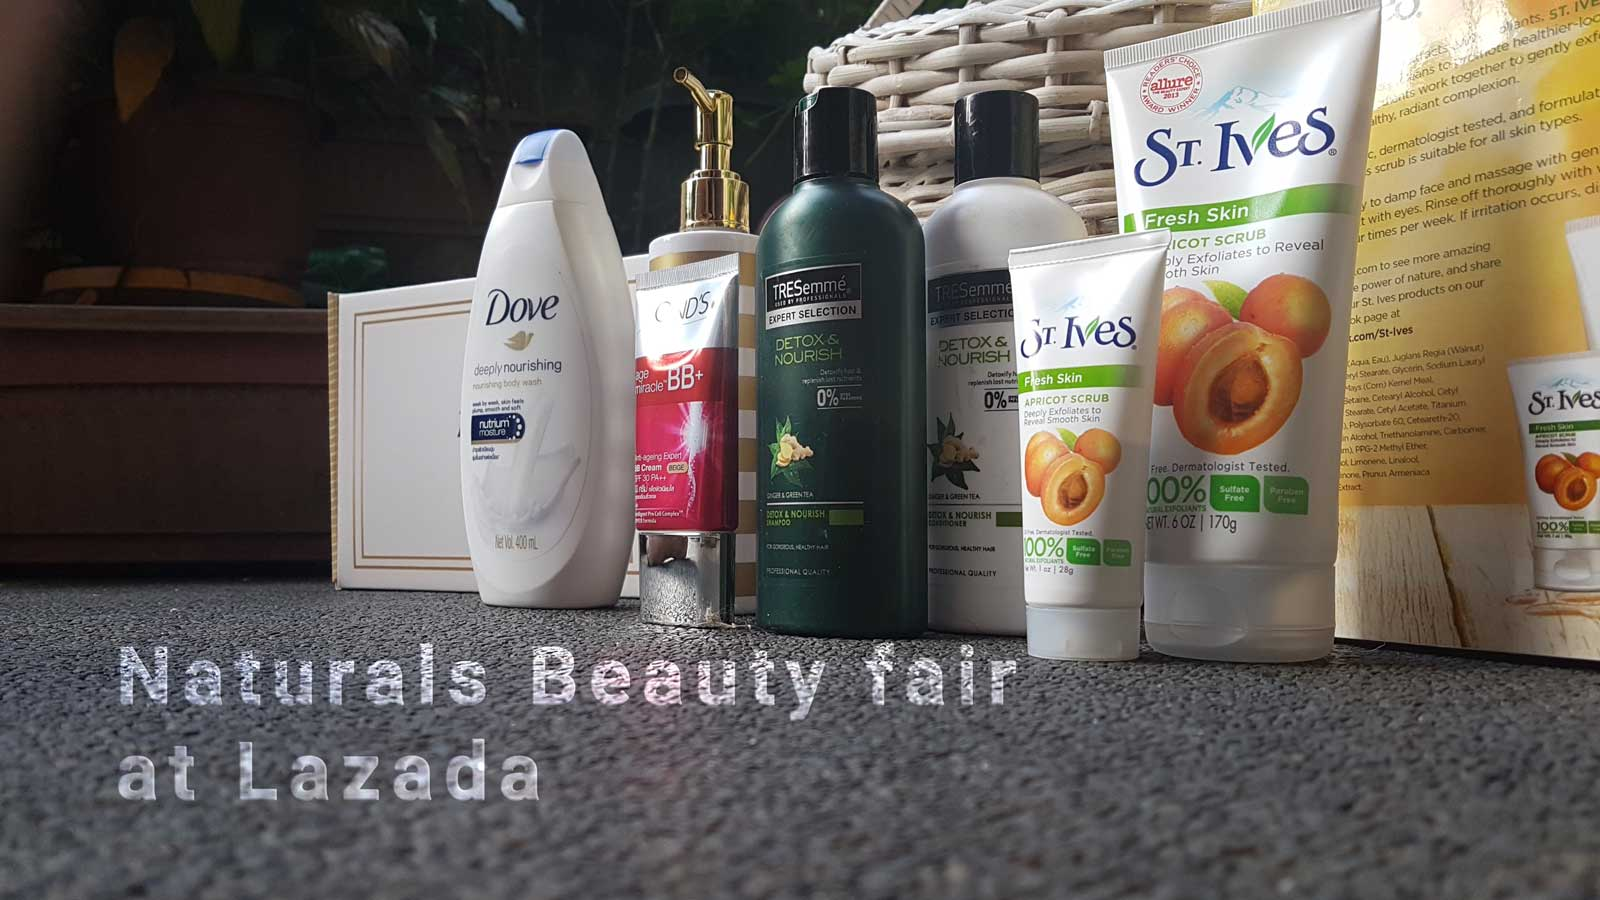 Celebrating Natural Beauty with the Naturals Beauty Fair